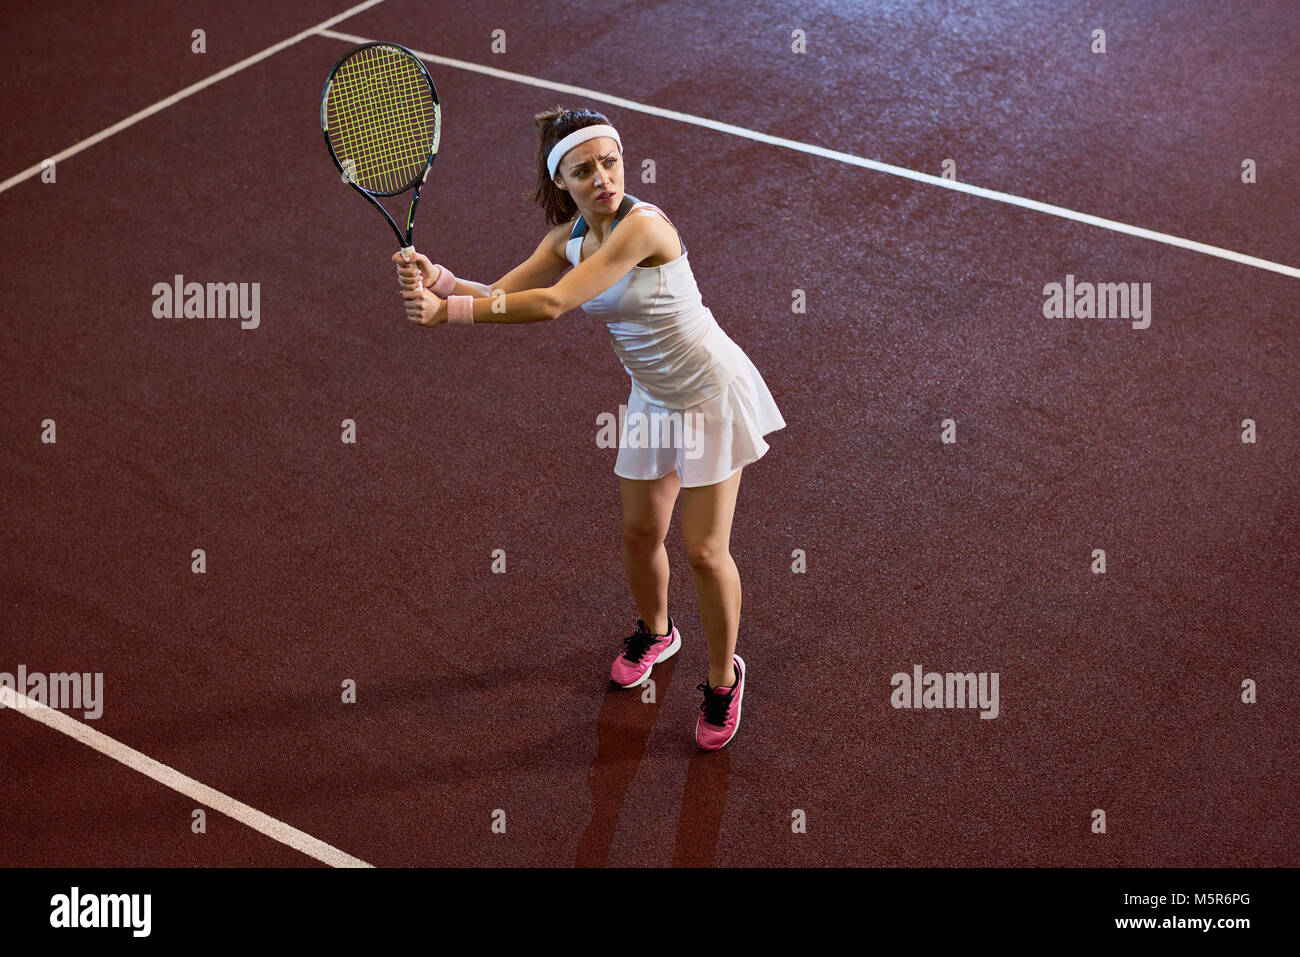 High angle portrait of forceful woman playing tennis in indoor court swinging racket, copy space - Stock Image